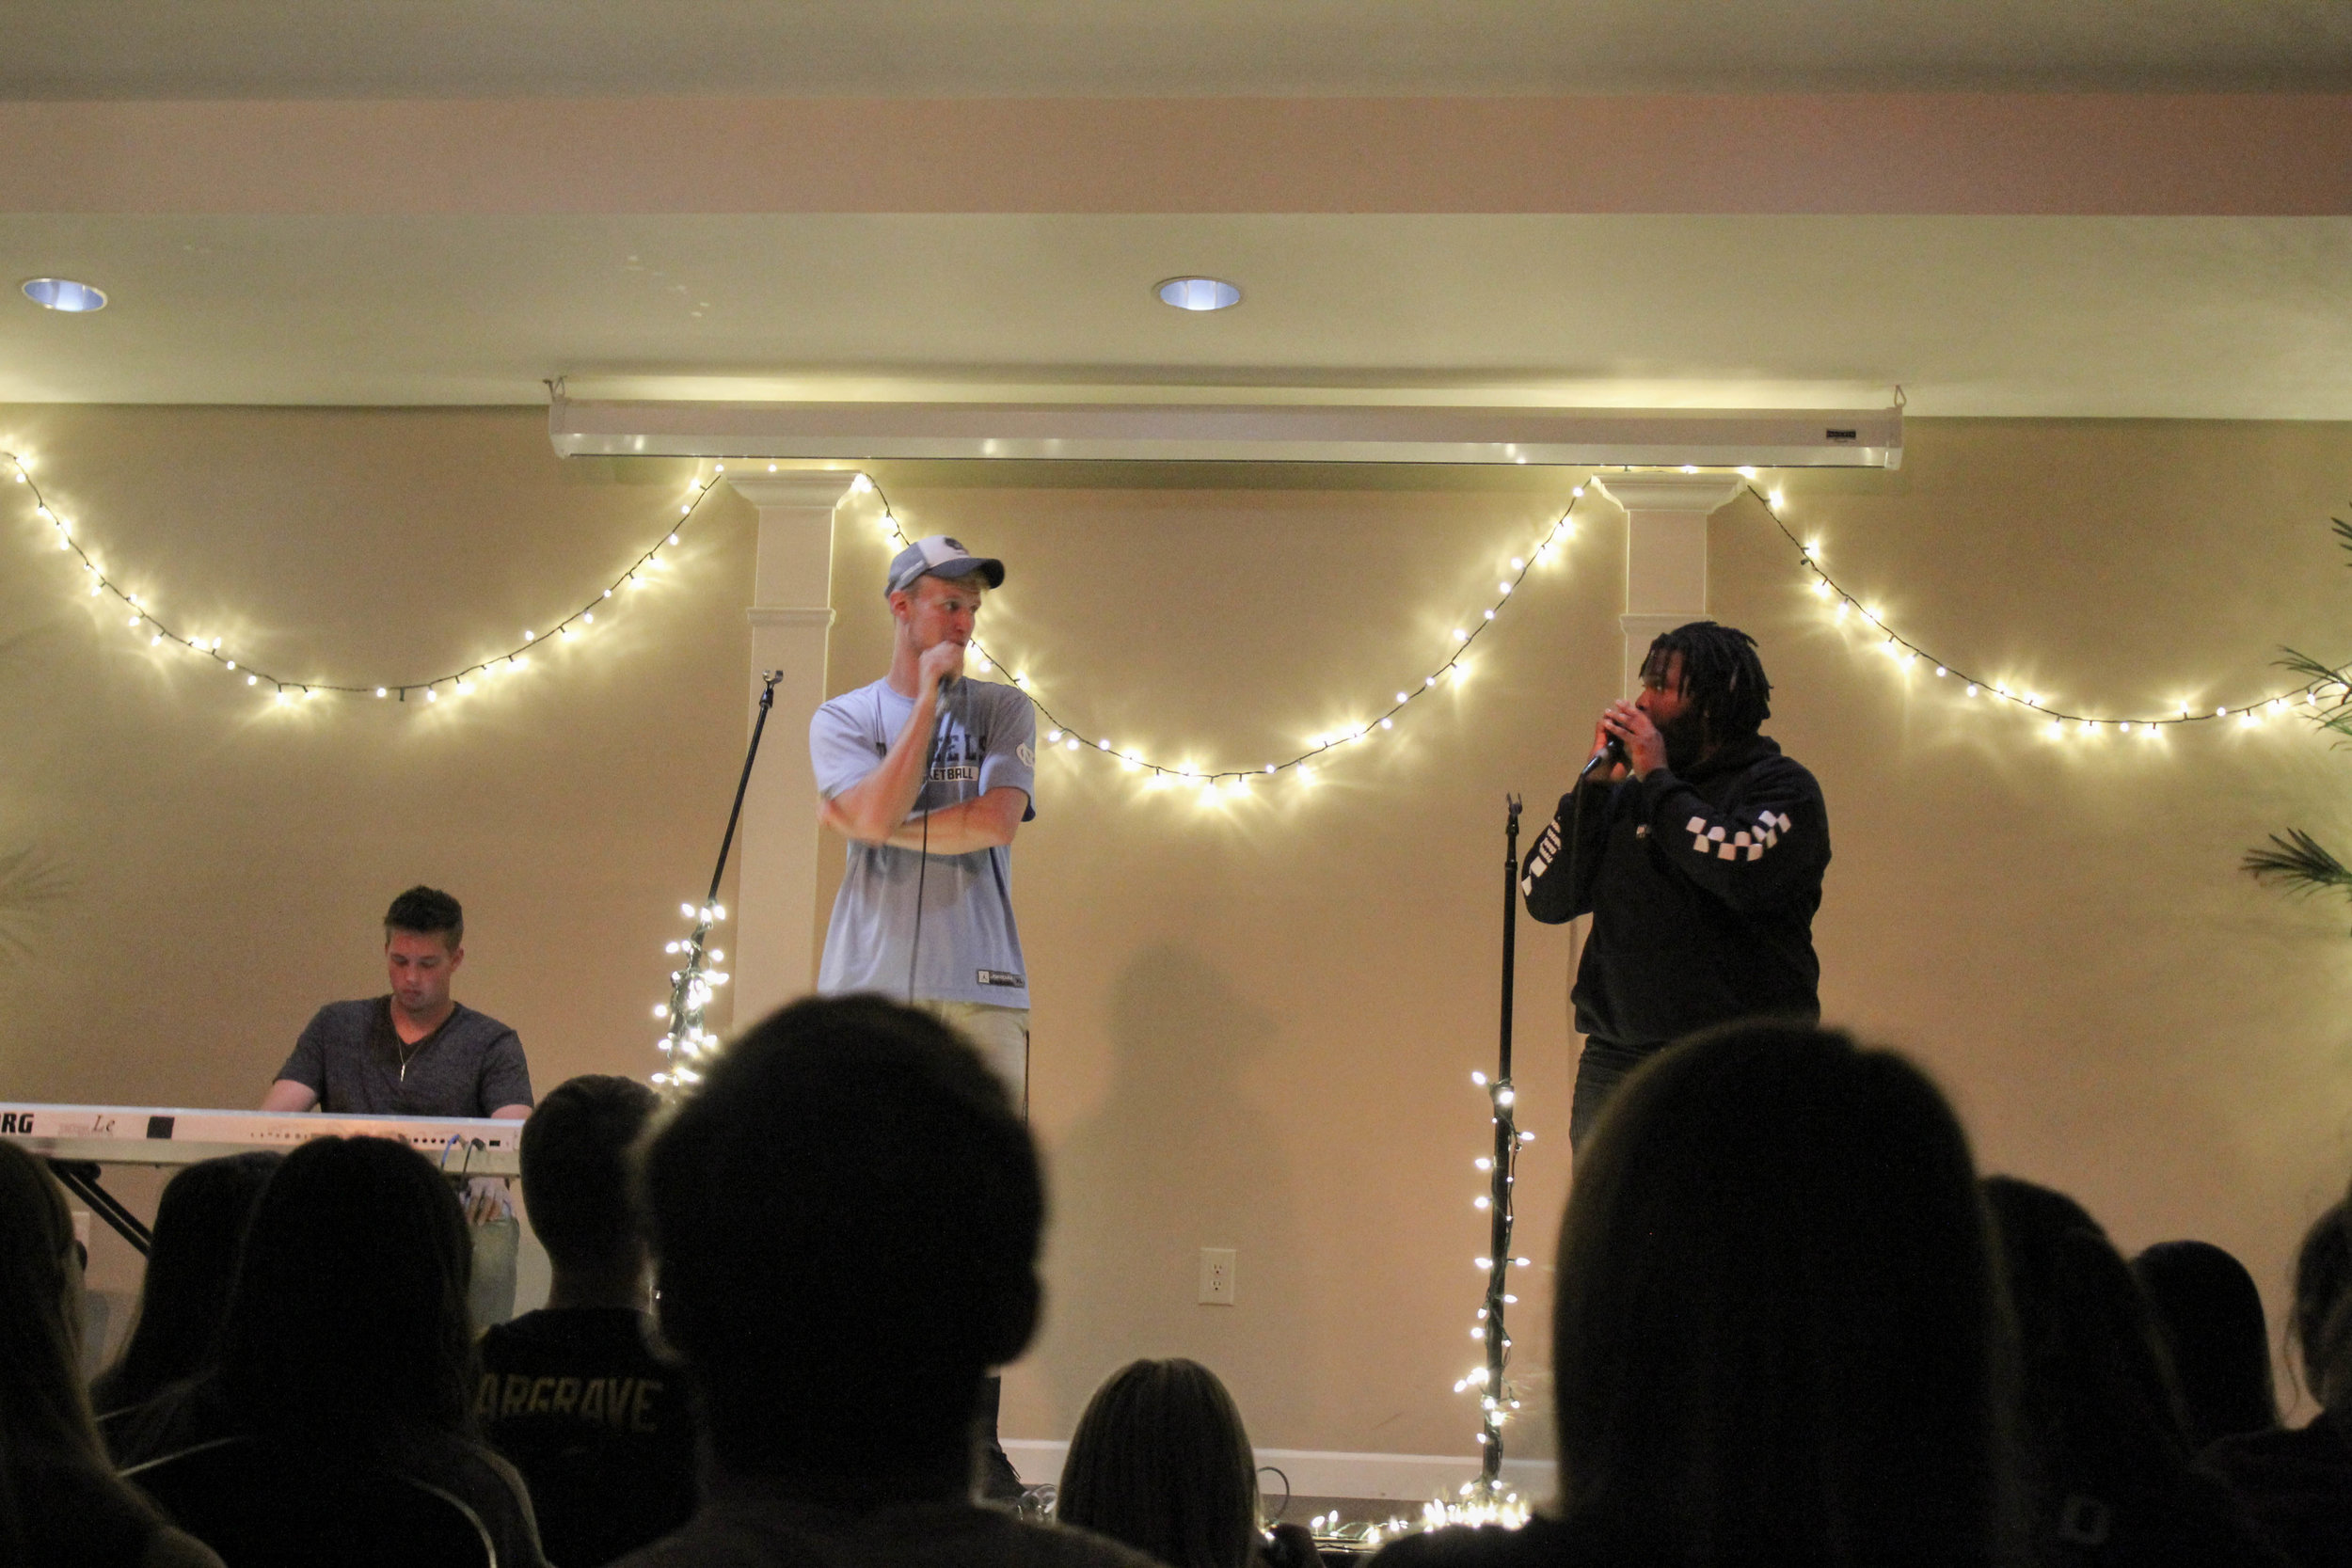 Juniors, Ben Hamsho and Mykel Scott talk to the crowd about the Crusader football team. They discussed how the football team moved to the Gulf South Conference and urged students to attend the first home game the following week to show support.